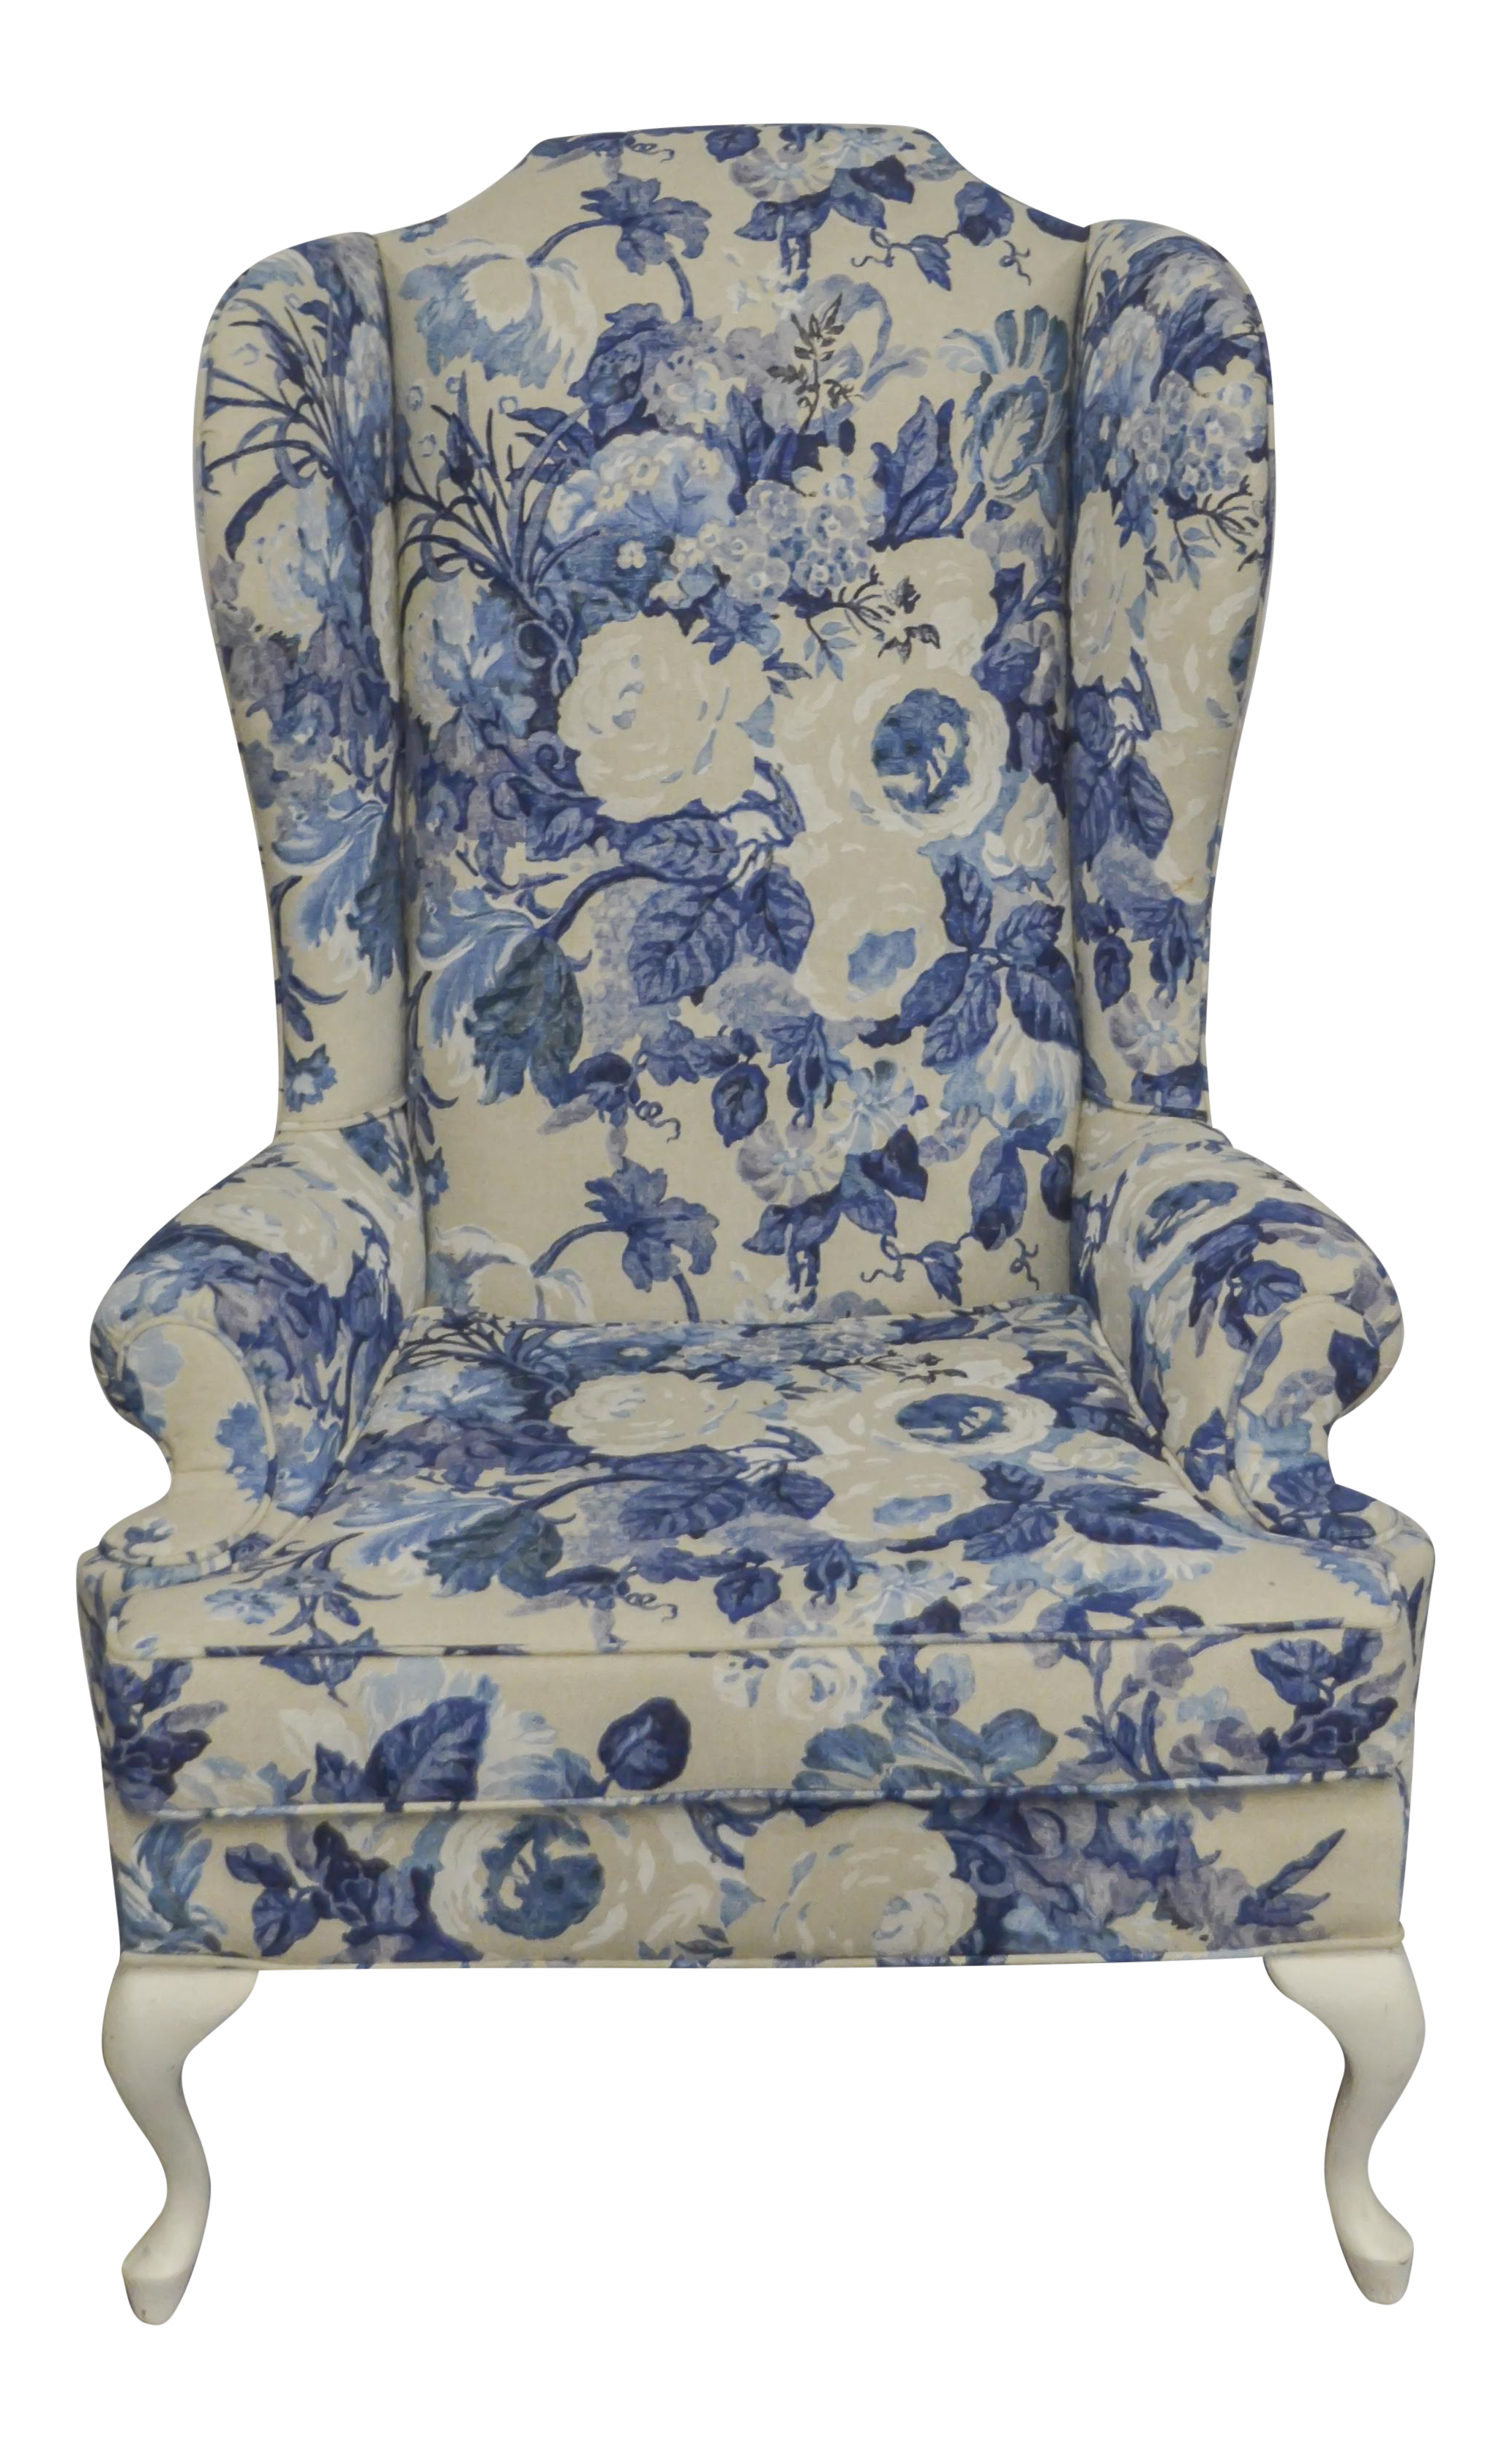 Oversized Wingback Chair Vintage Duralee Linen Blue White Floral Wing Chair In 2019